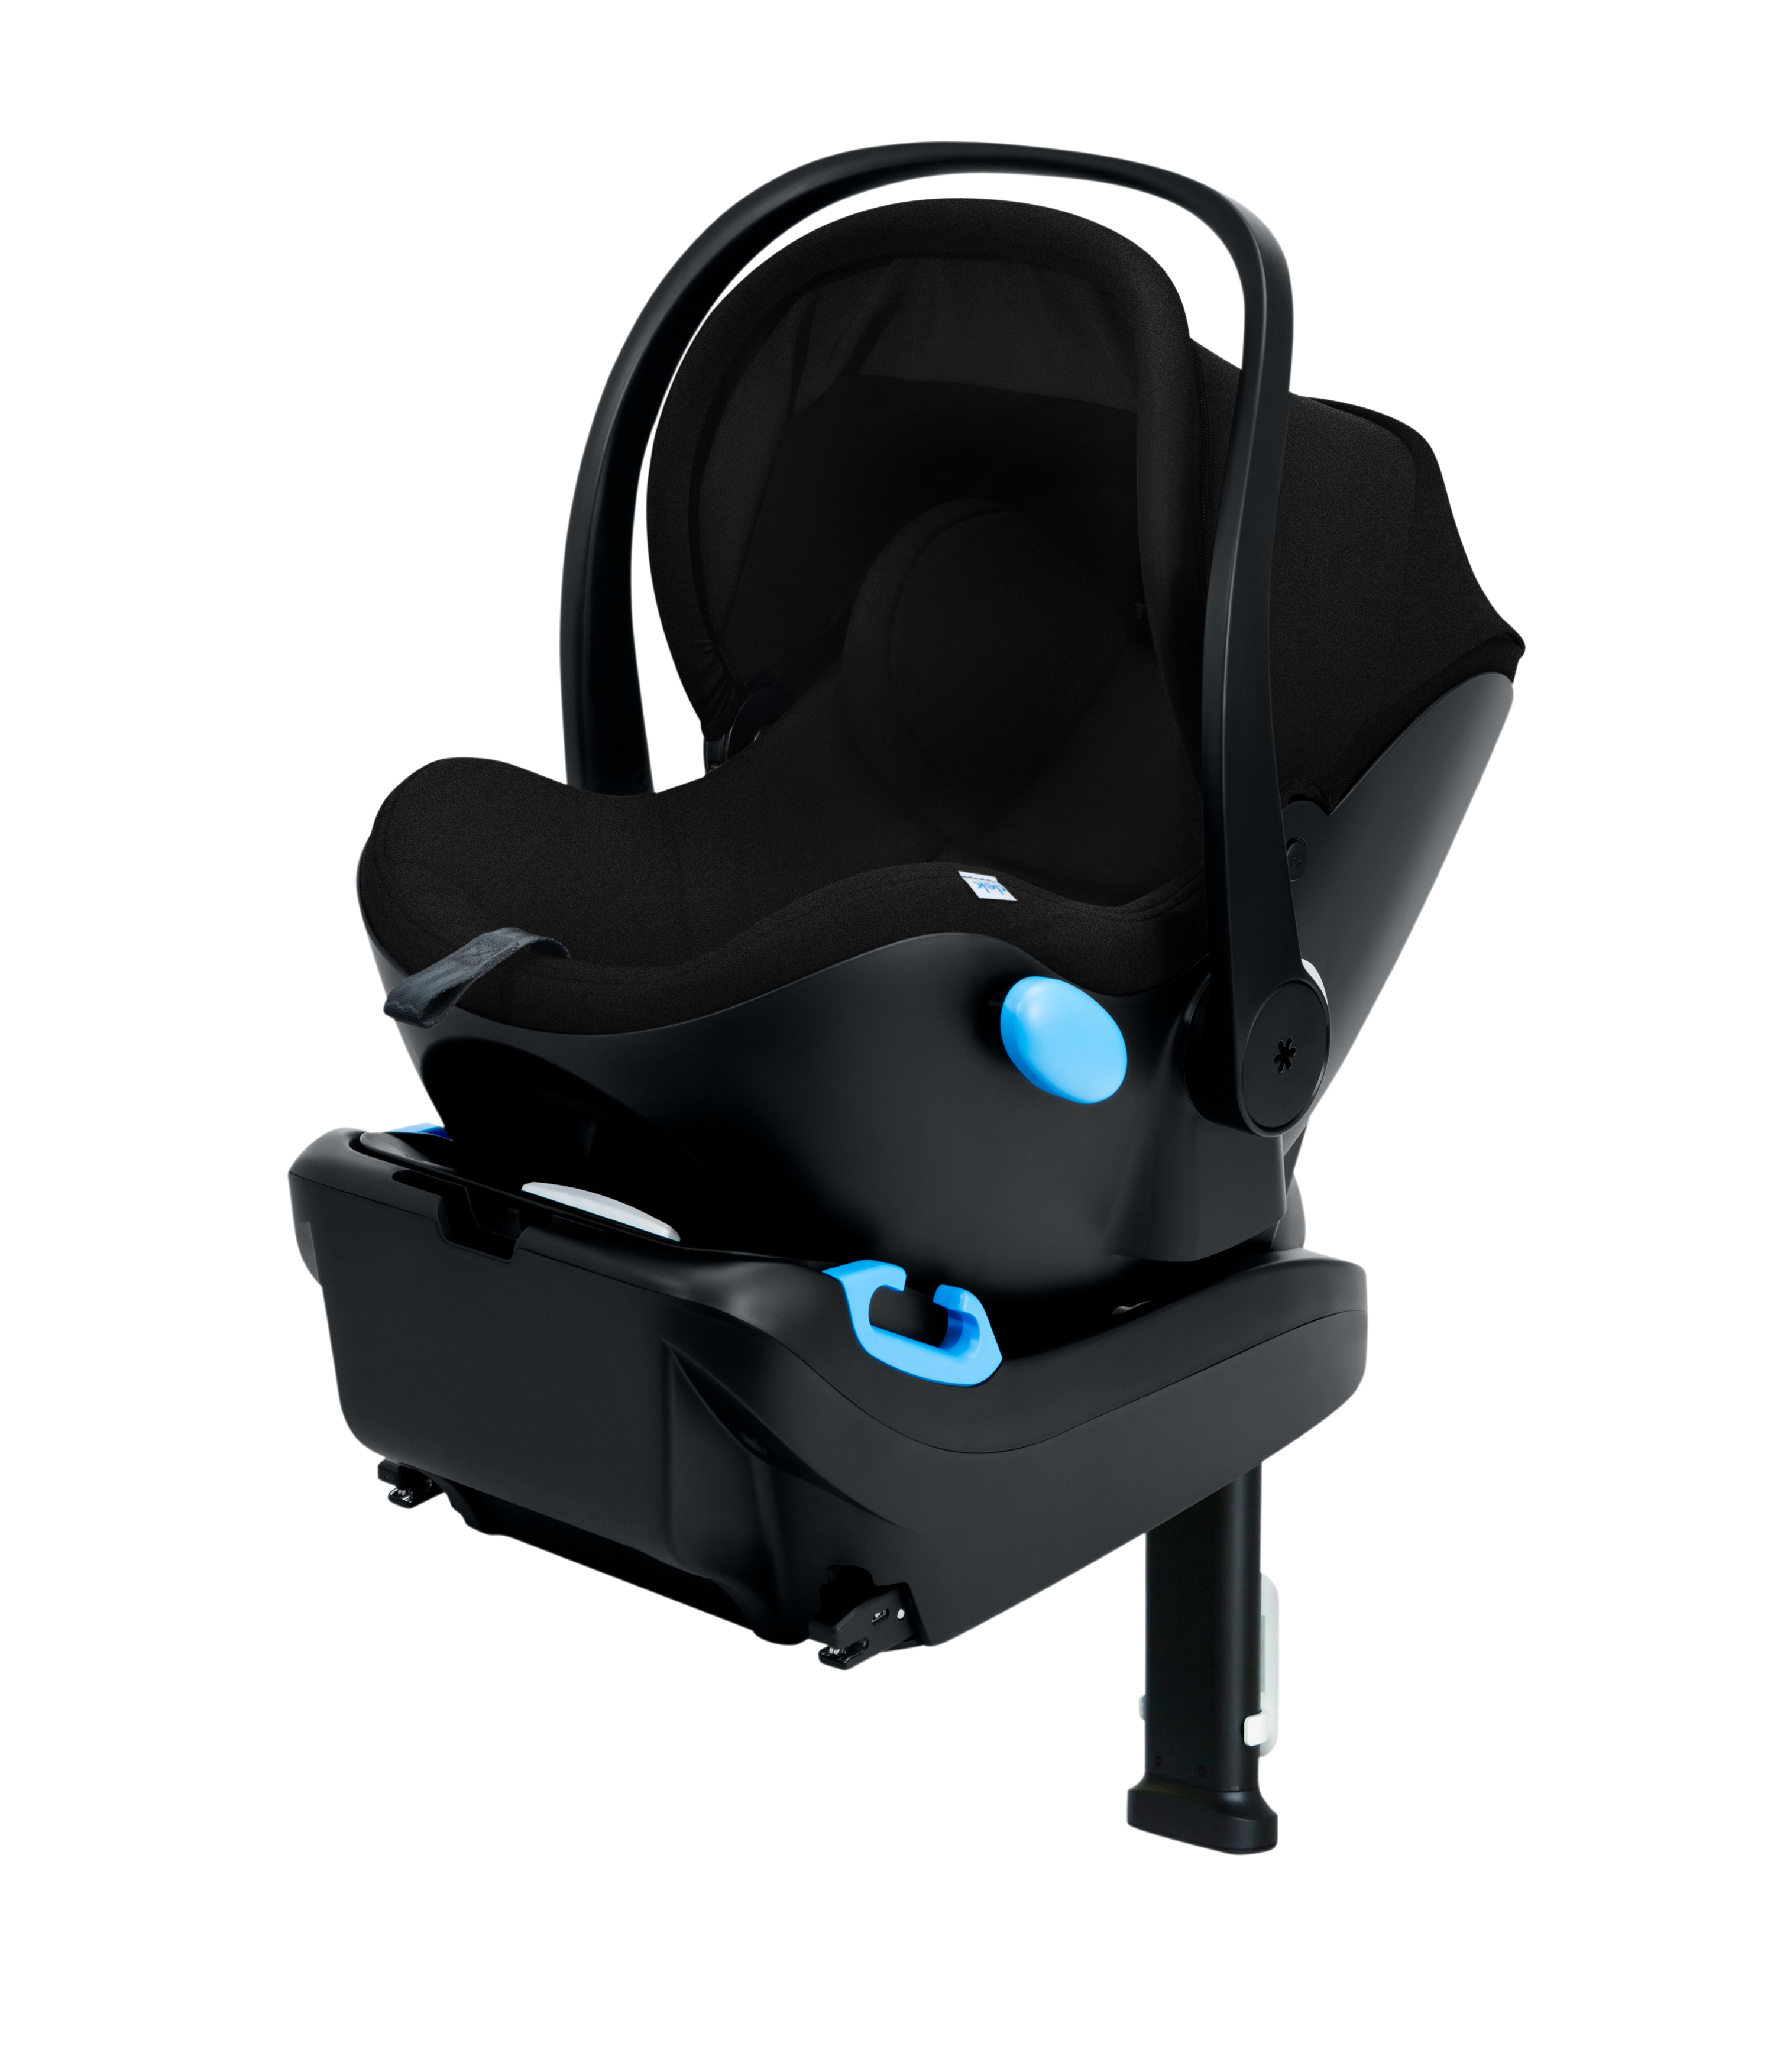 clek LIING Infant Carrier Seat - Pitch Black (Tailored C-Zero Plus Fabric)